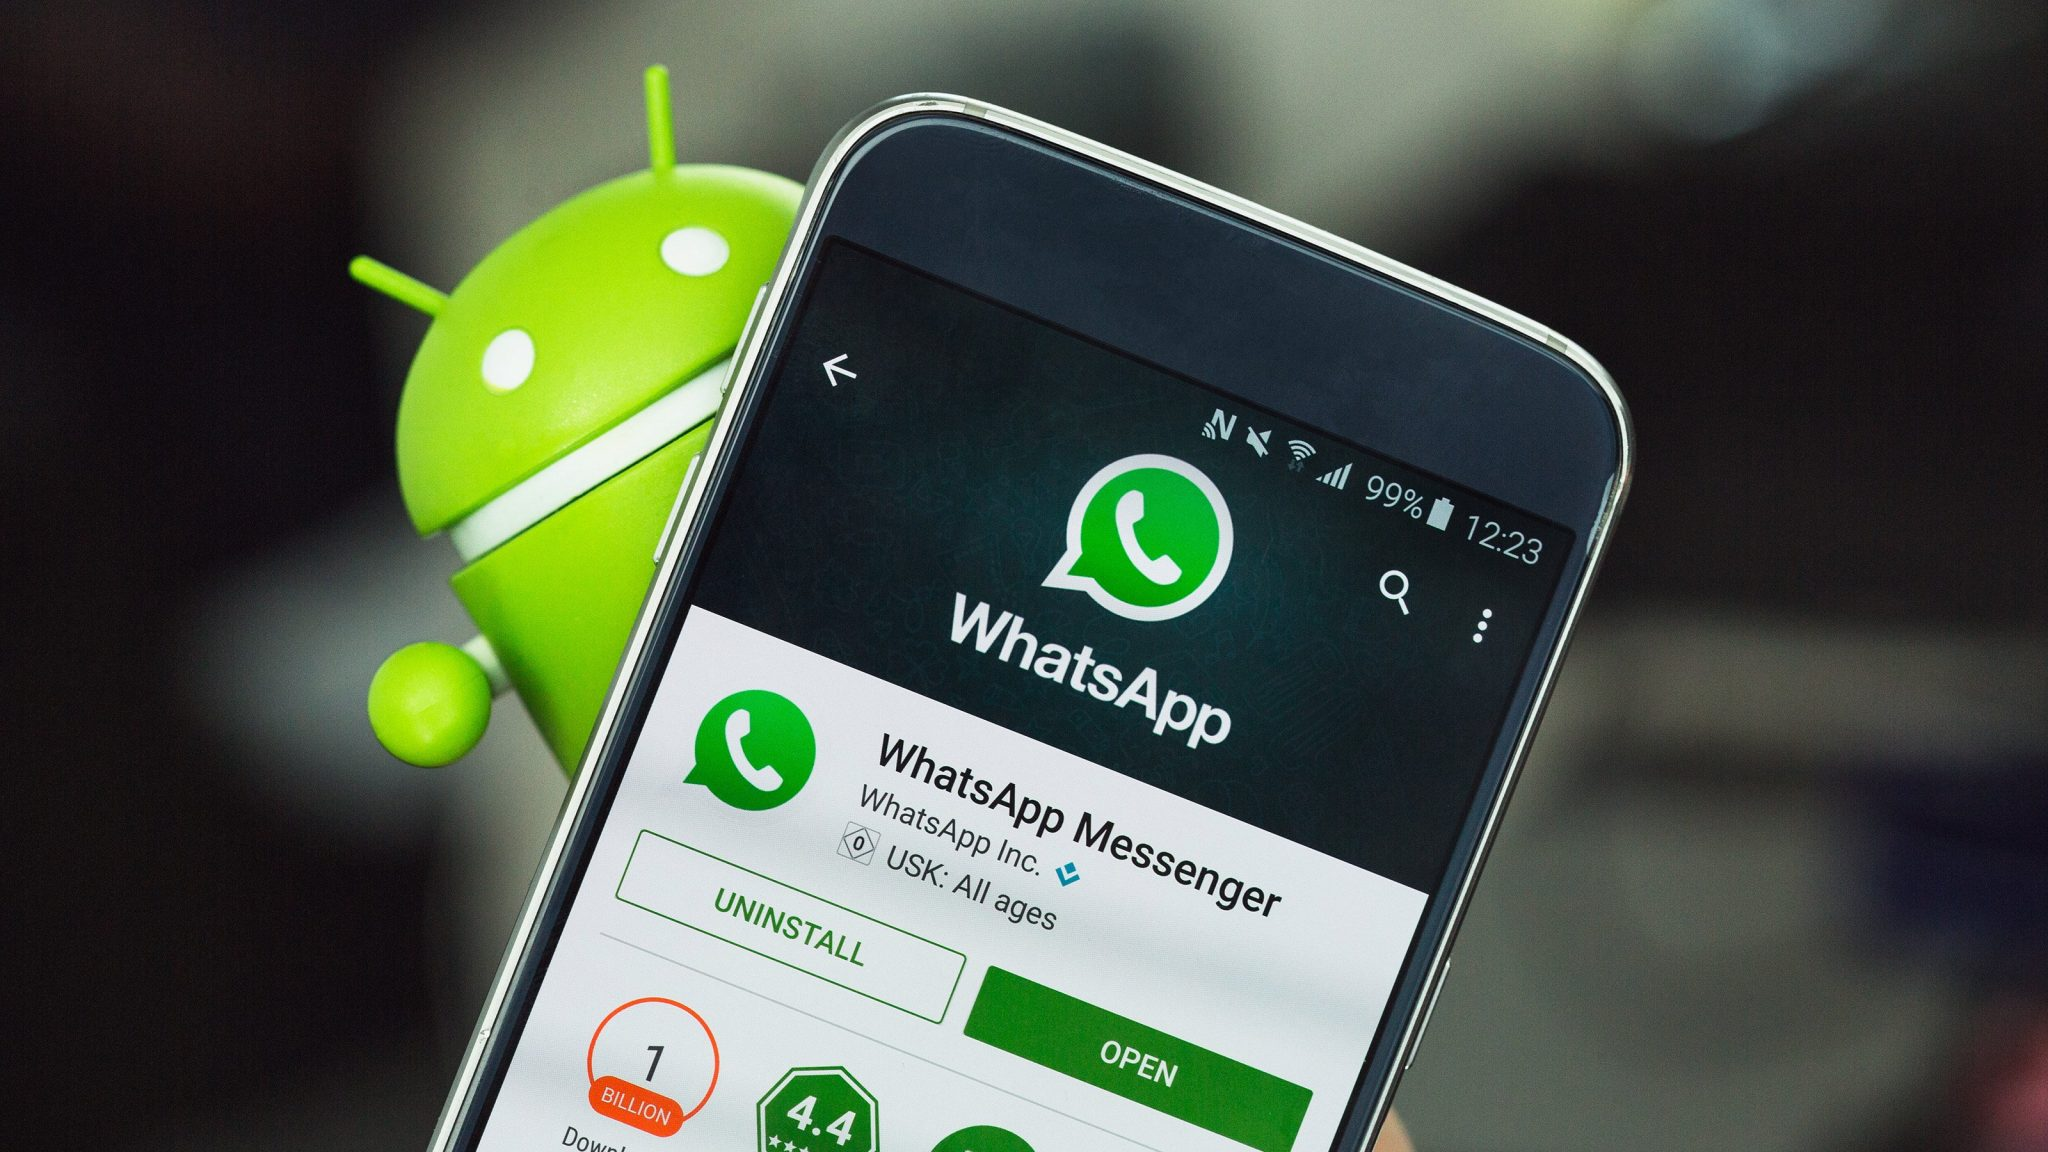 WhatsApp Update Version 2.16.264